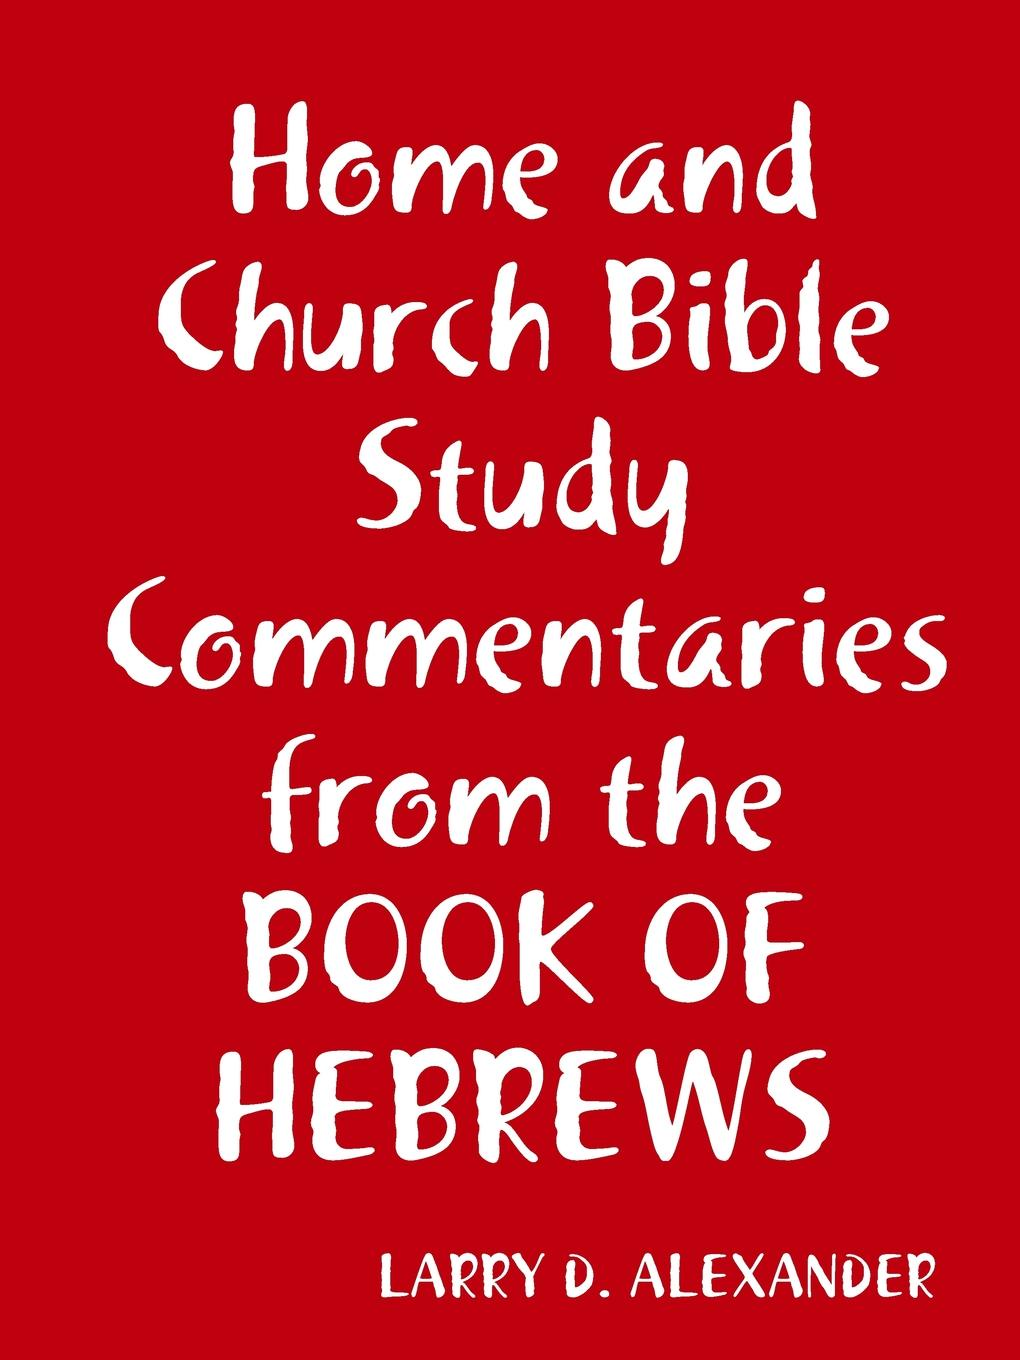 Larry D. Alexander Home and Church Bible study commentaries from the Book of Hebrews